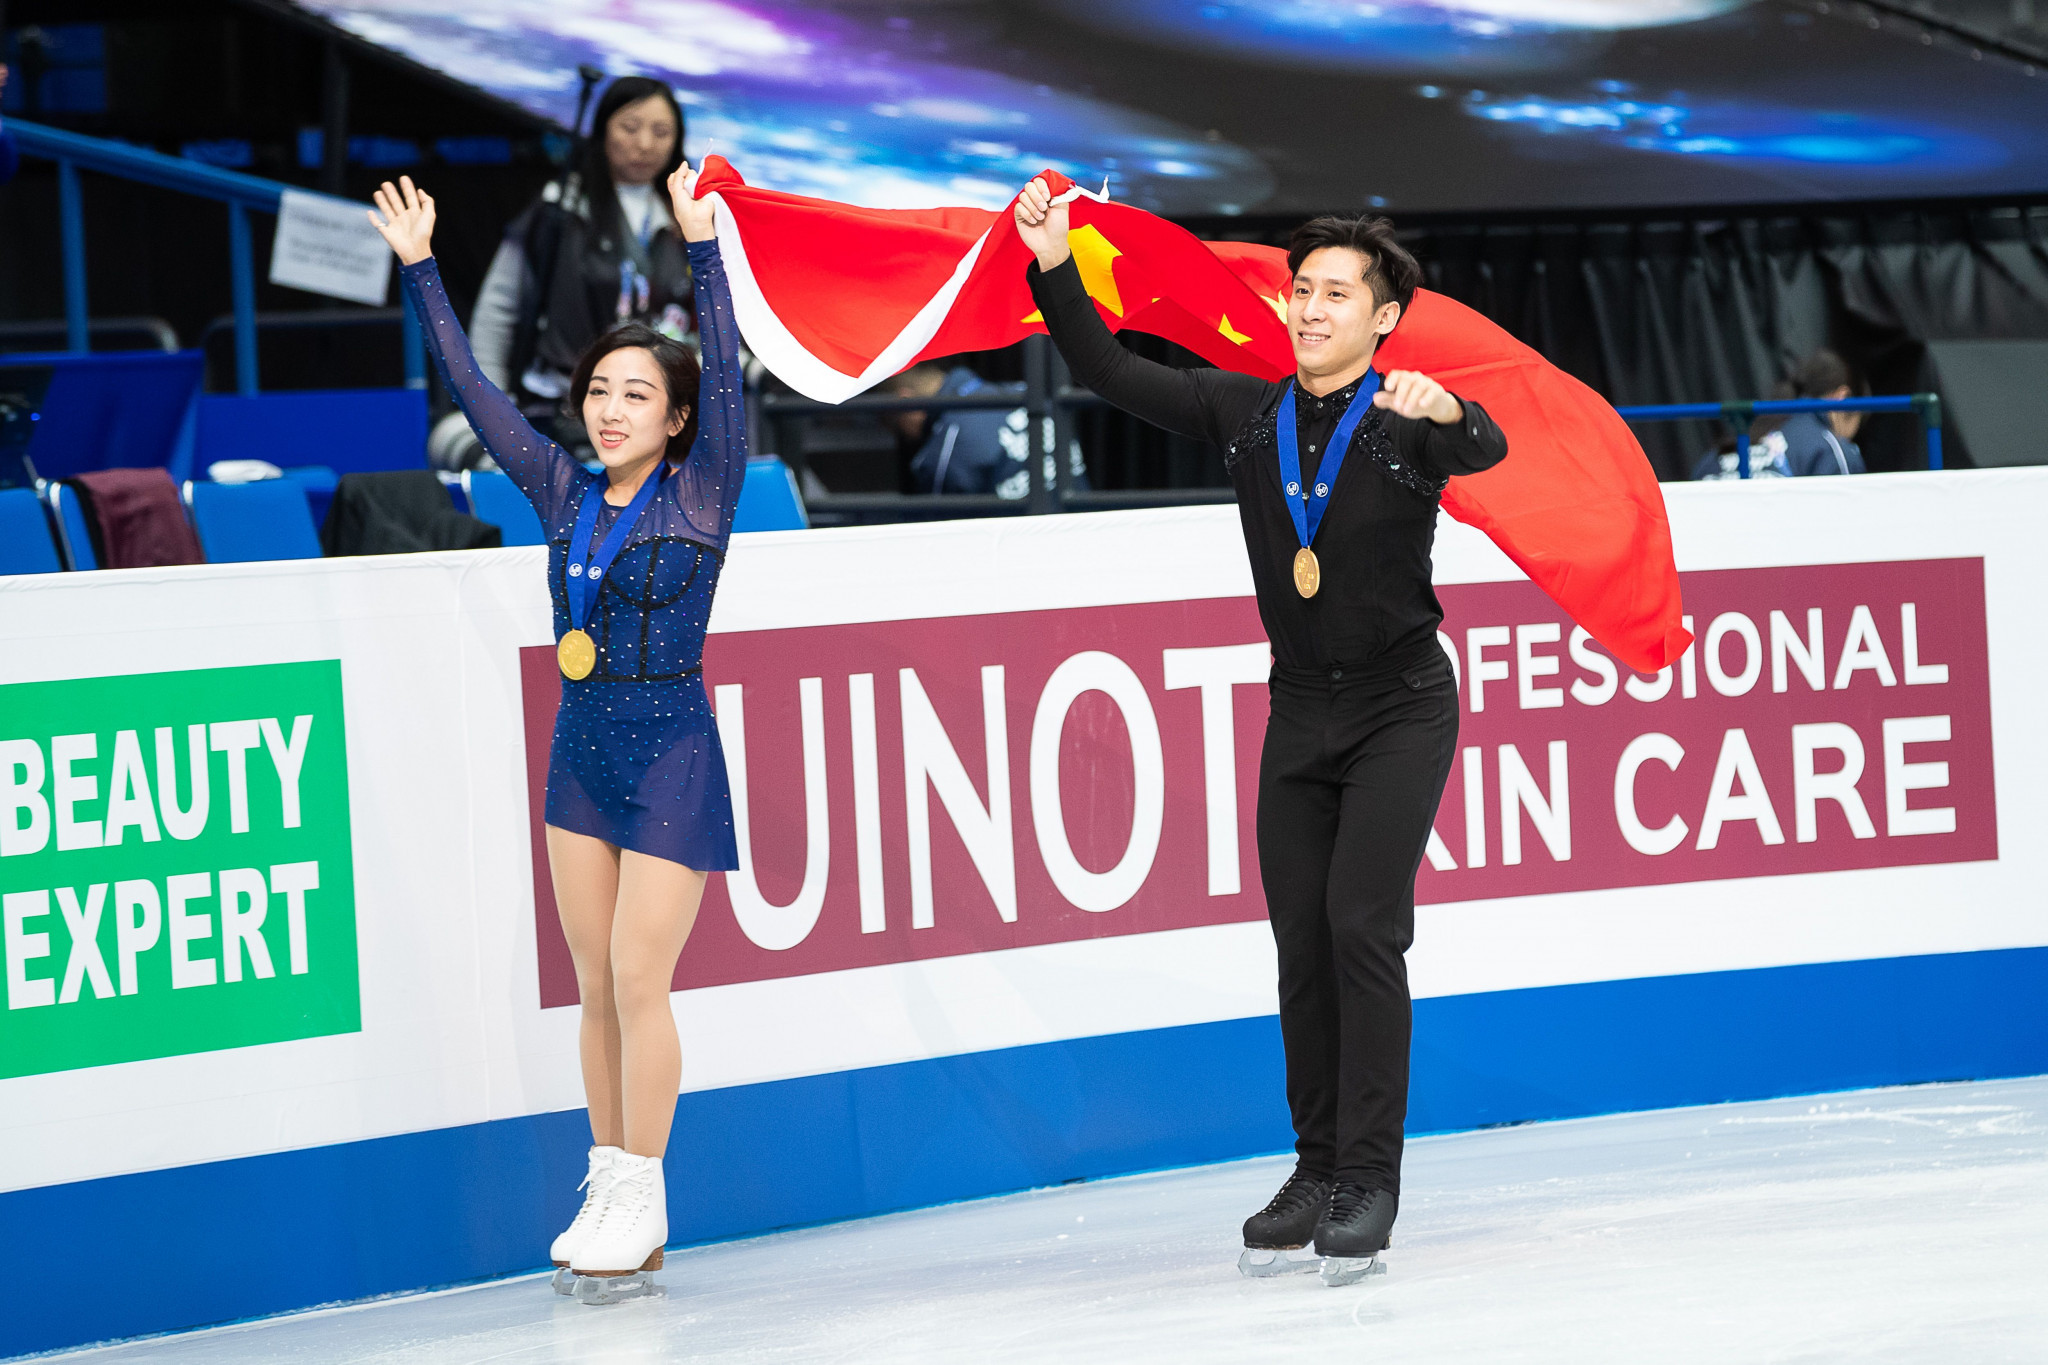 China's Wenjing Sui and Cong Han won pairs gold at the World Figure Skating Championships ©Getty Images